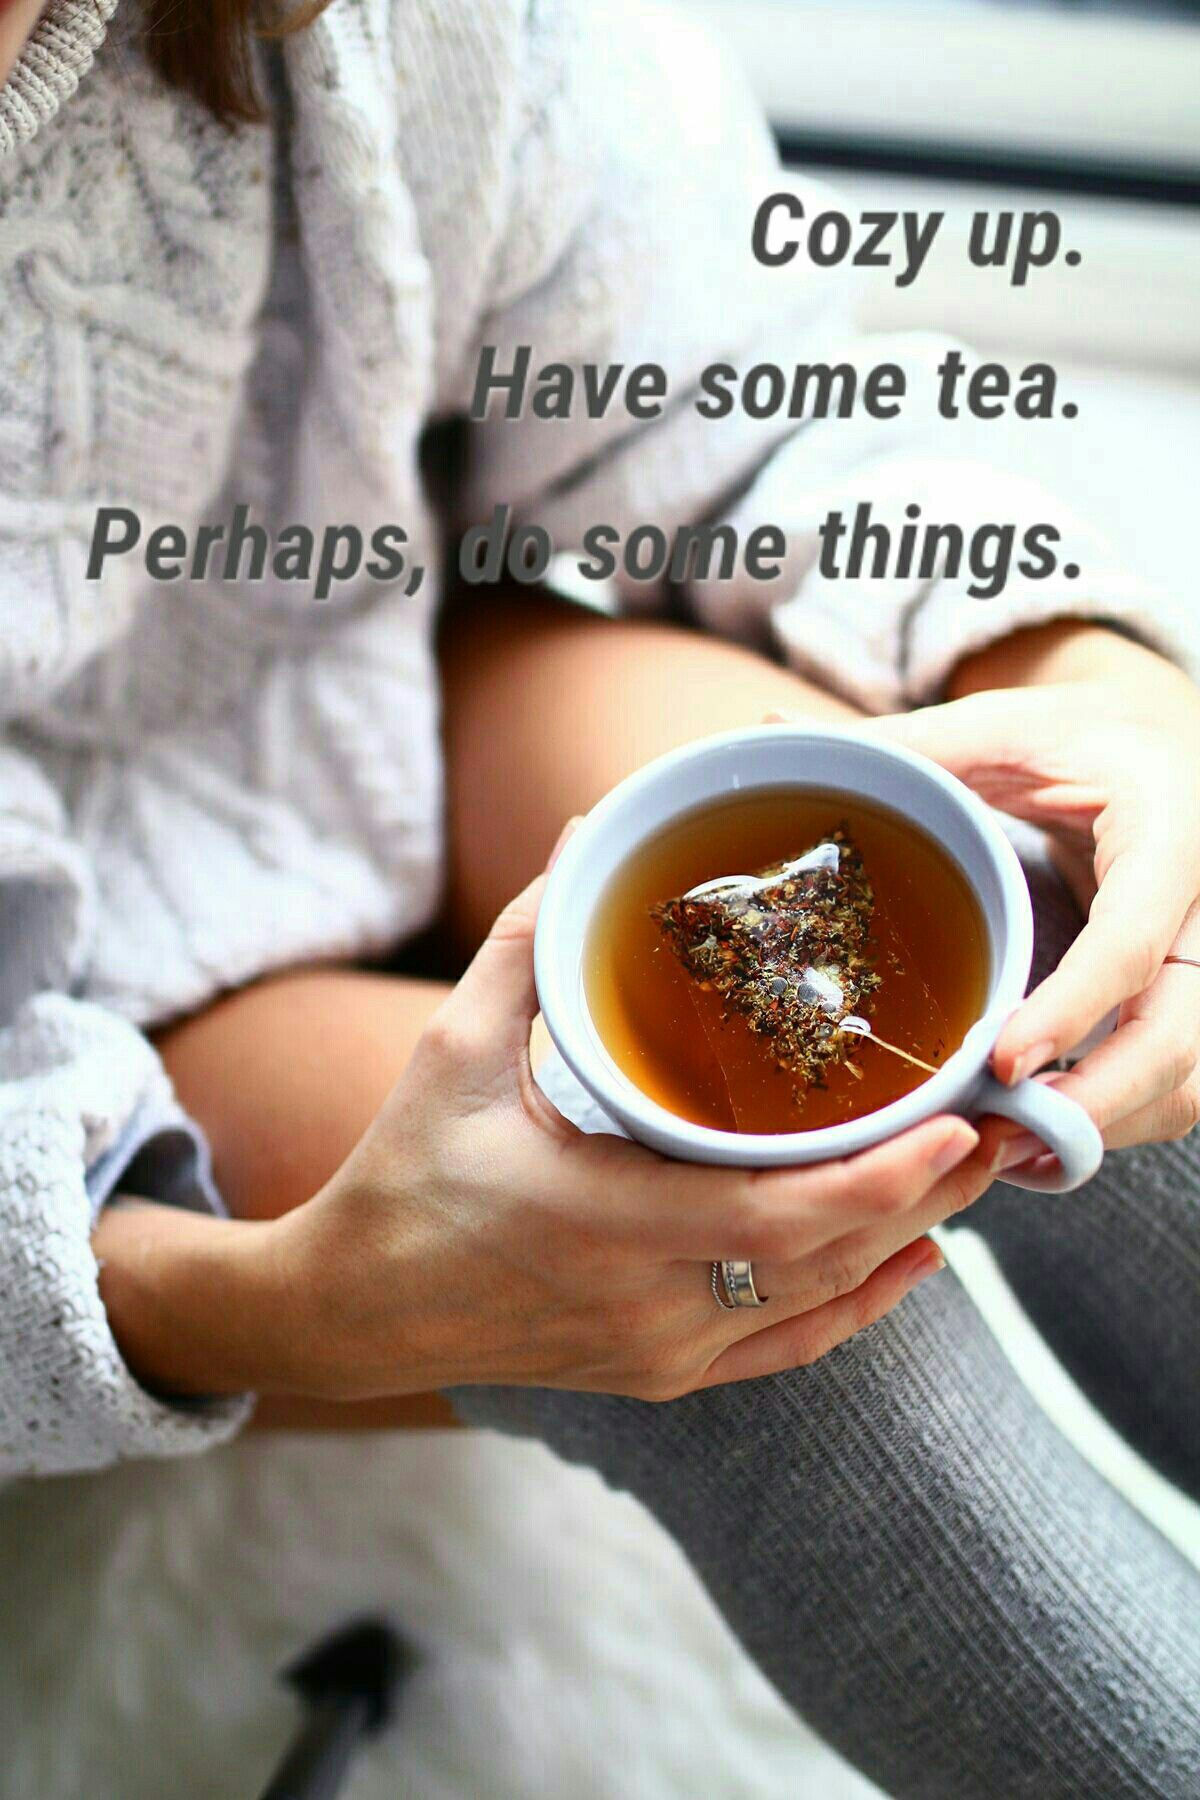 Pin by Susan Matthews on Recipes: Drinks, Tea Time & Quotes in 2019